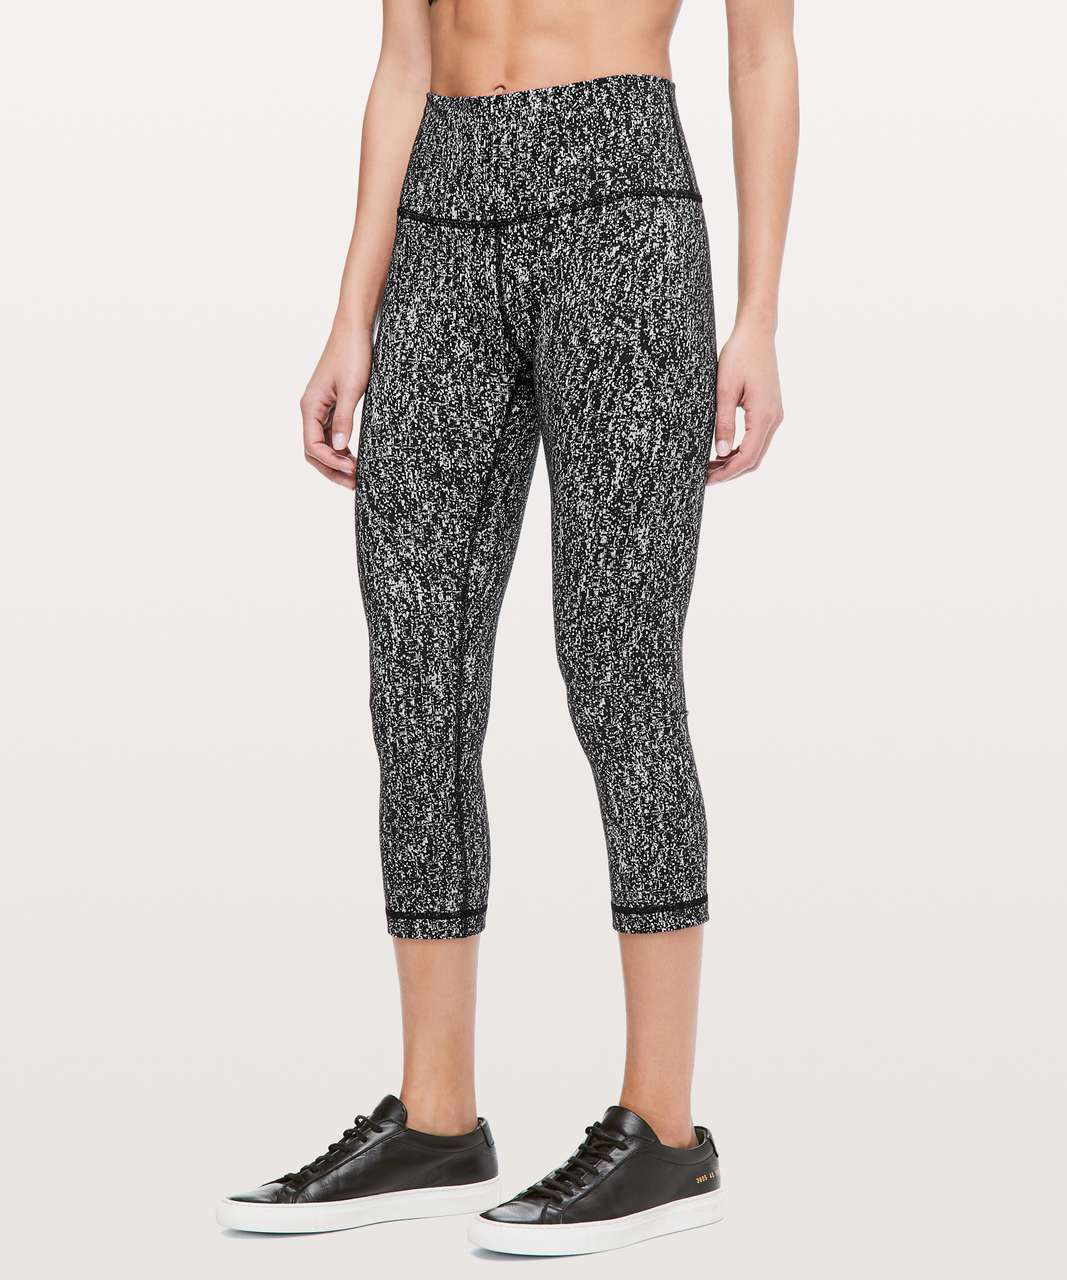 "Lululemon Wunder Under Crop (High-Rise) *21"" - Luon Suited Jacquard Black White"